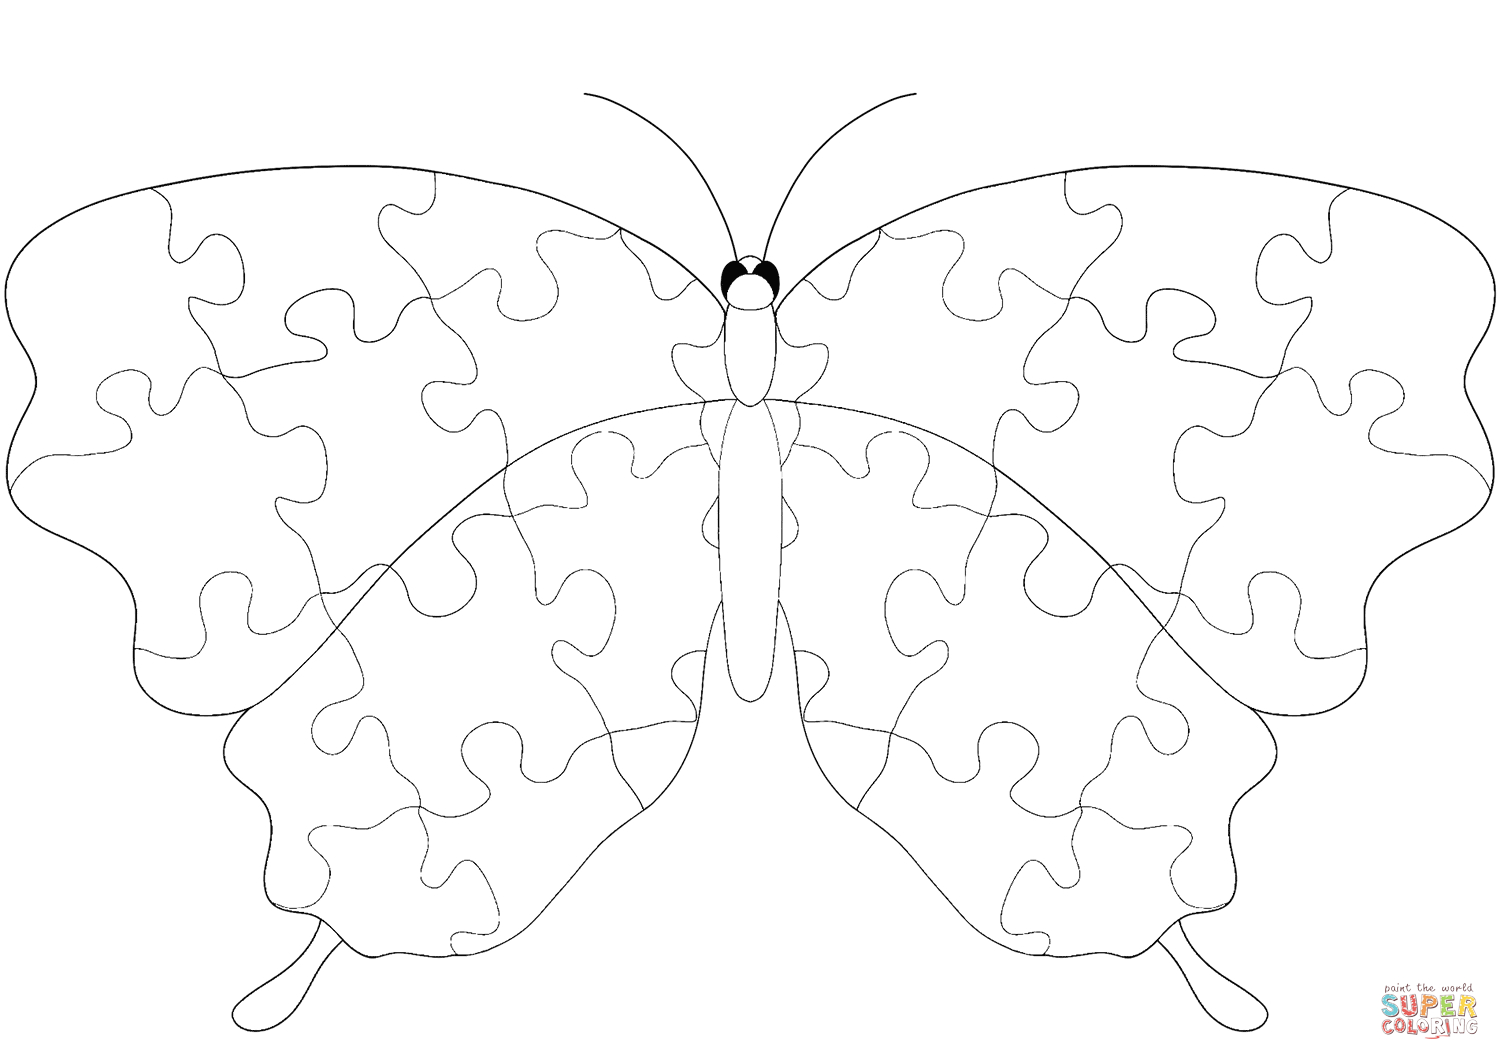 Butterfly With Jigsaw Puzzle Pattern Coloring Page | Free Printable - Printable Puzzle Coloring Pages